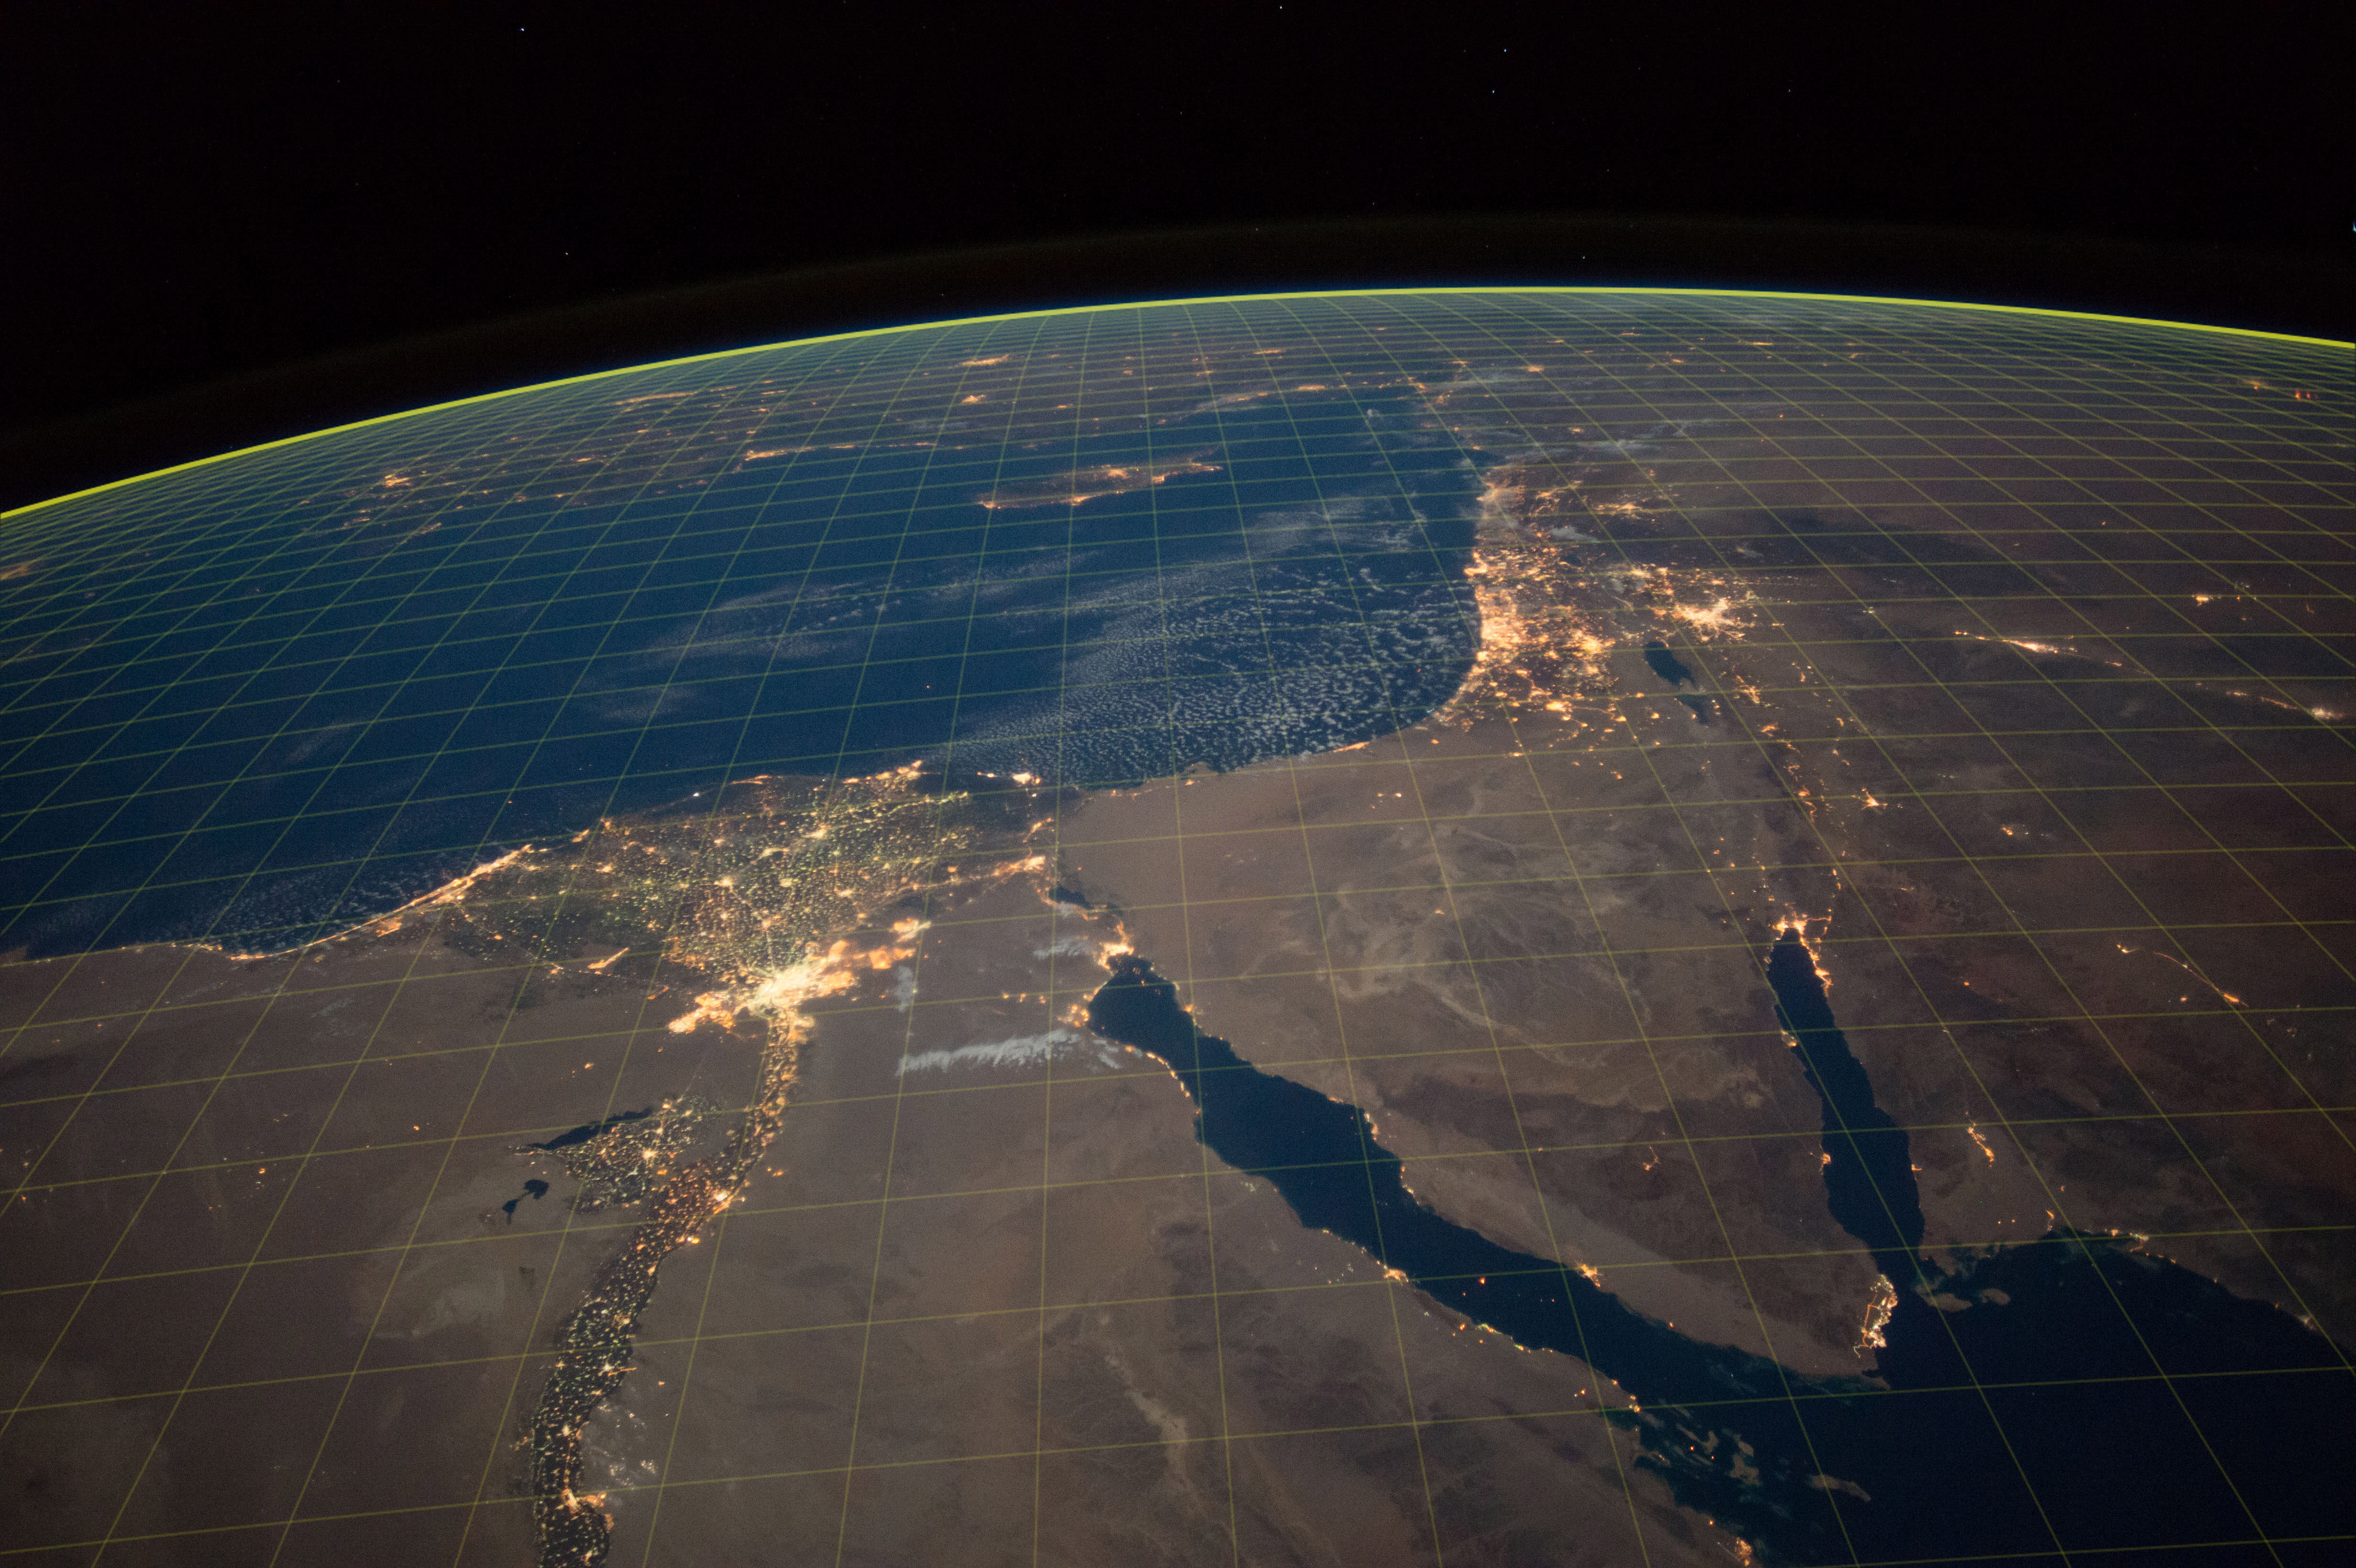 Is it Possible to See the Curvature of the Earth from Earth?